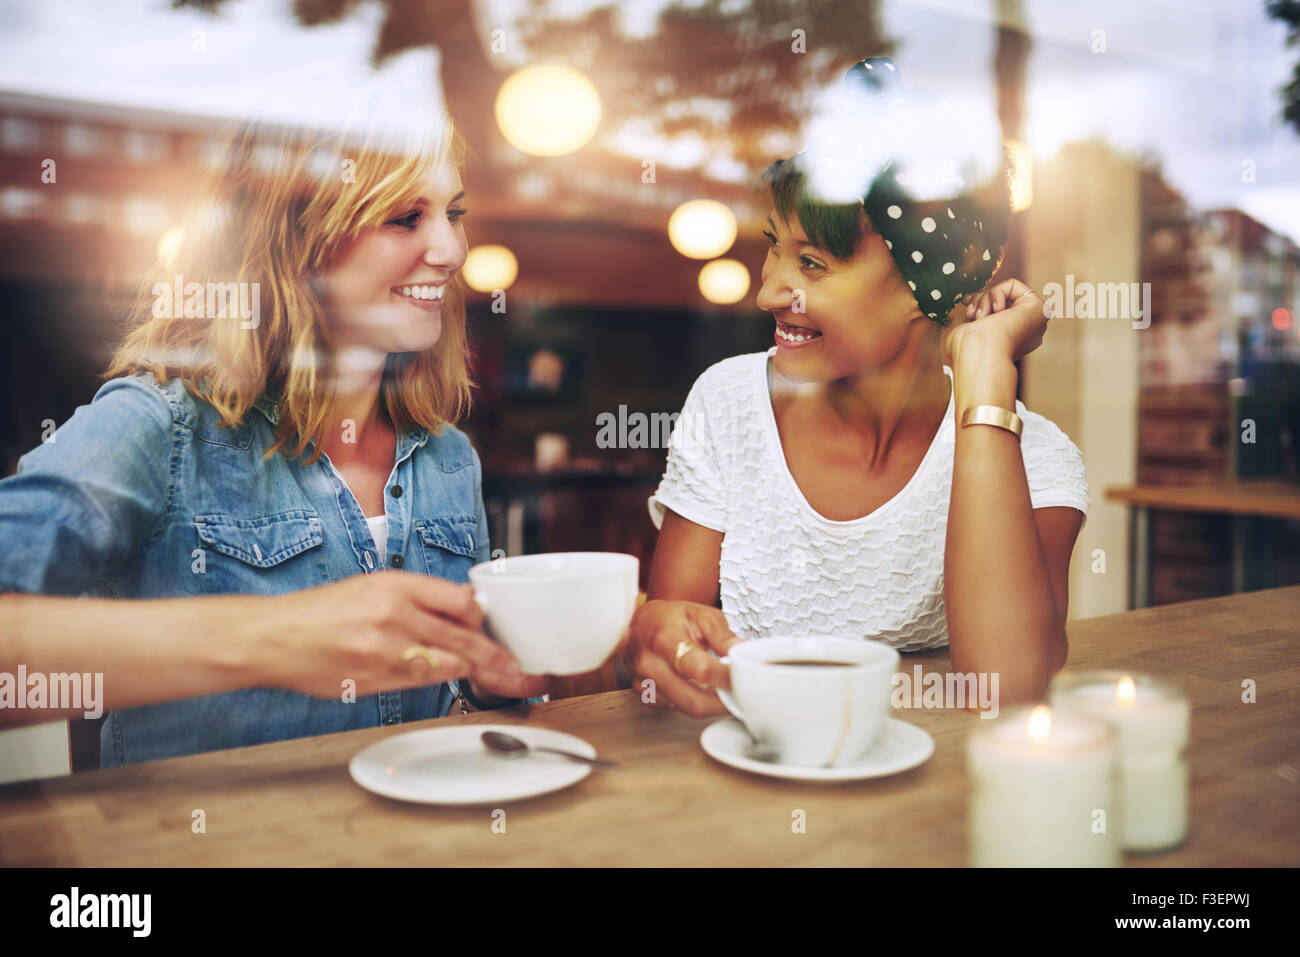 Two multi ethnic friends enjoying coffee together in a coffee shop viewed through glass with reflections as they sit at a table Stock Photo